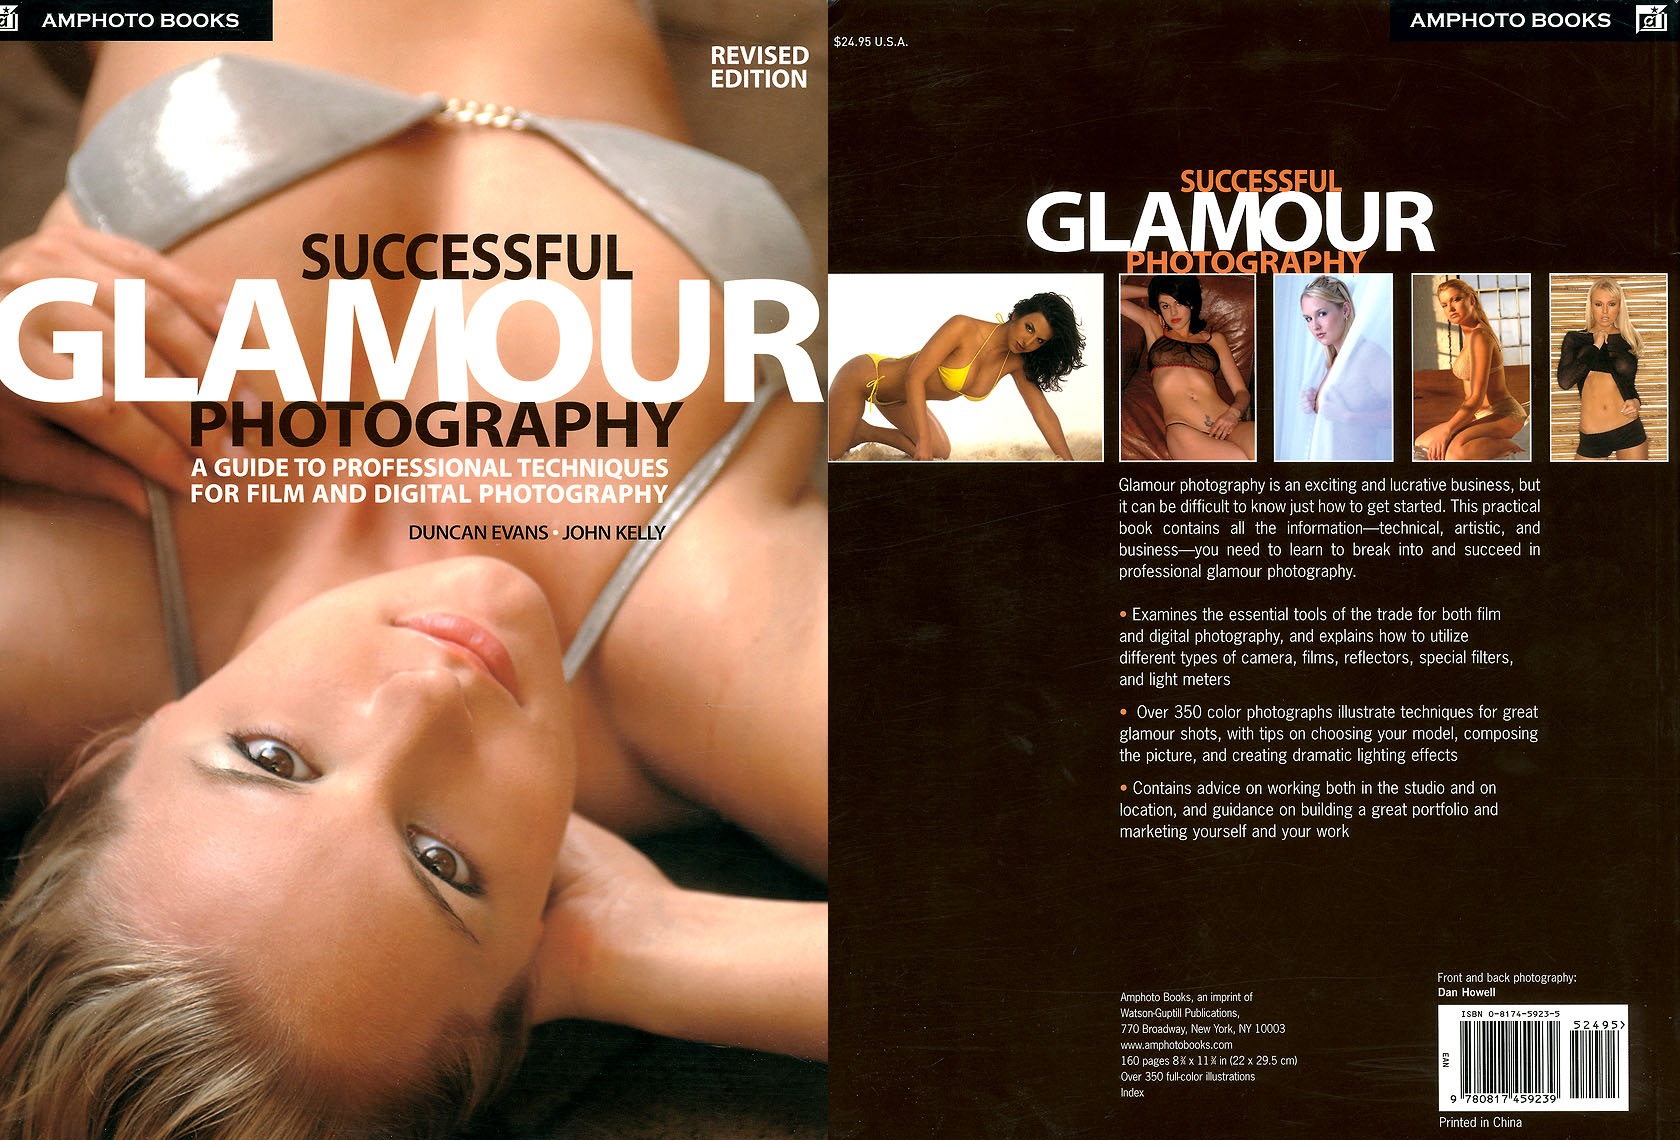 SuccessfulGlamBook